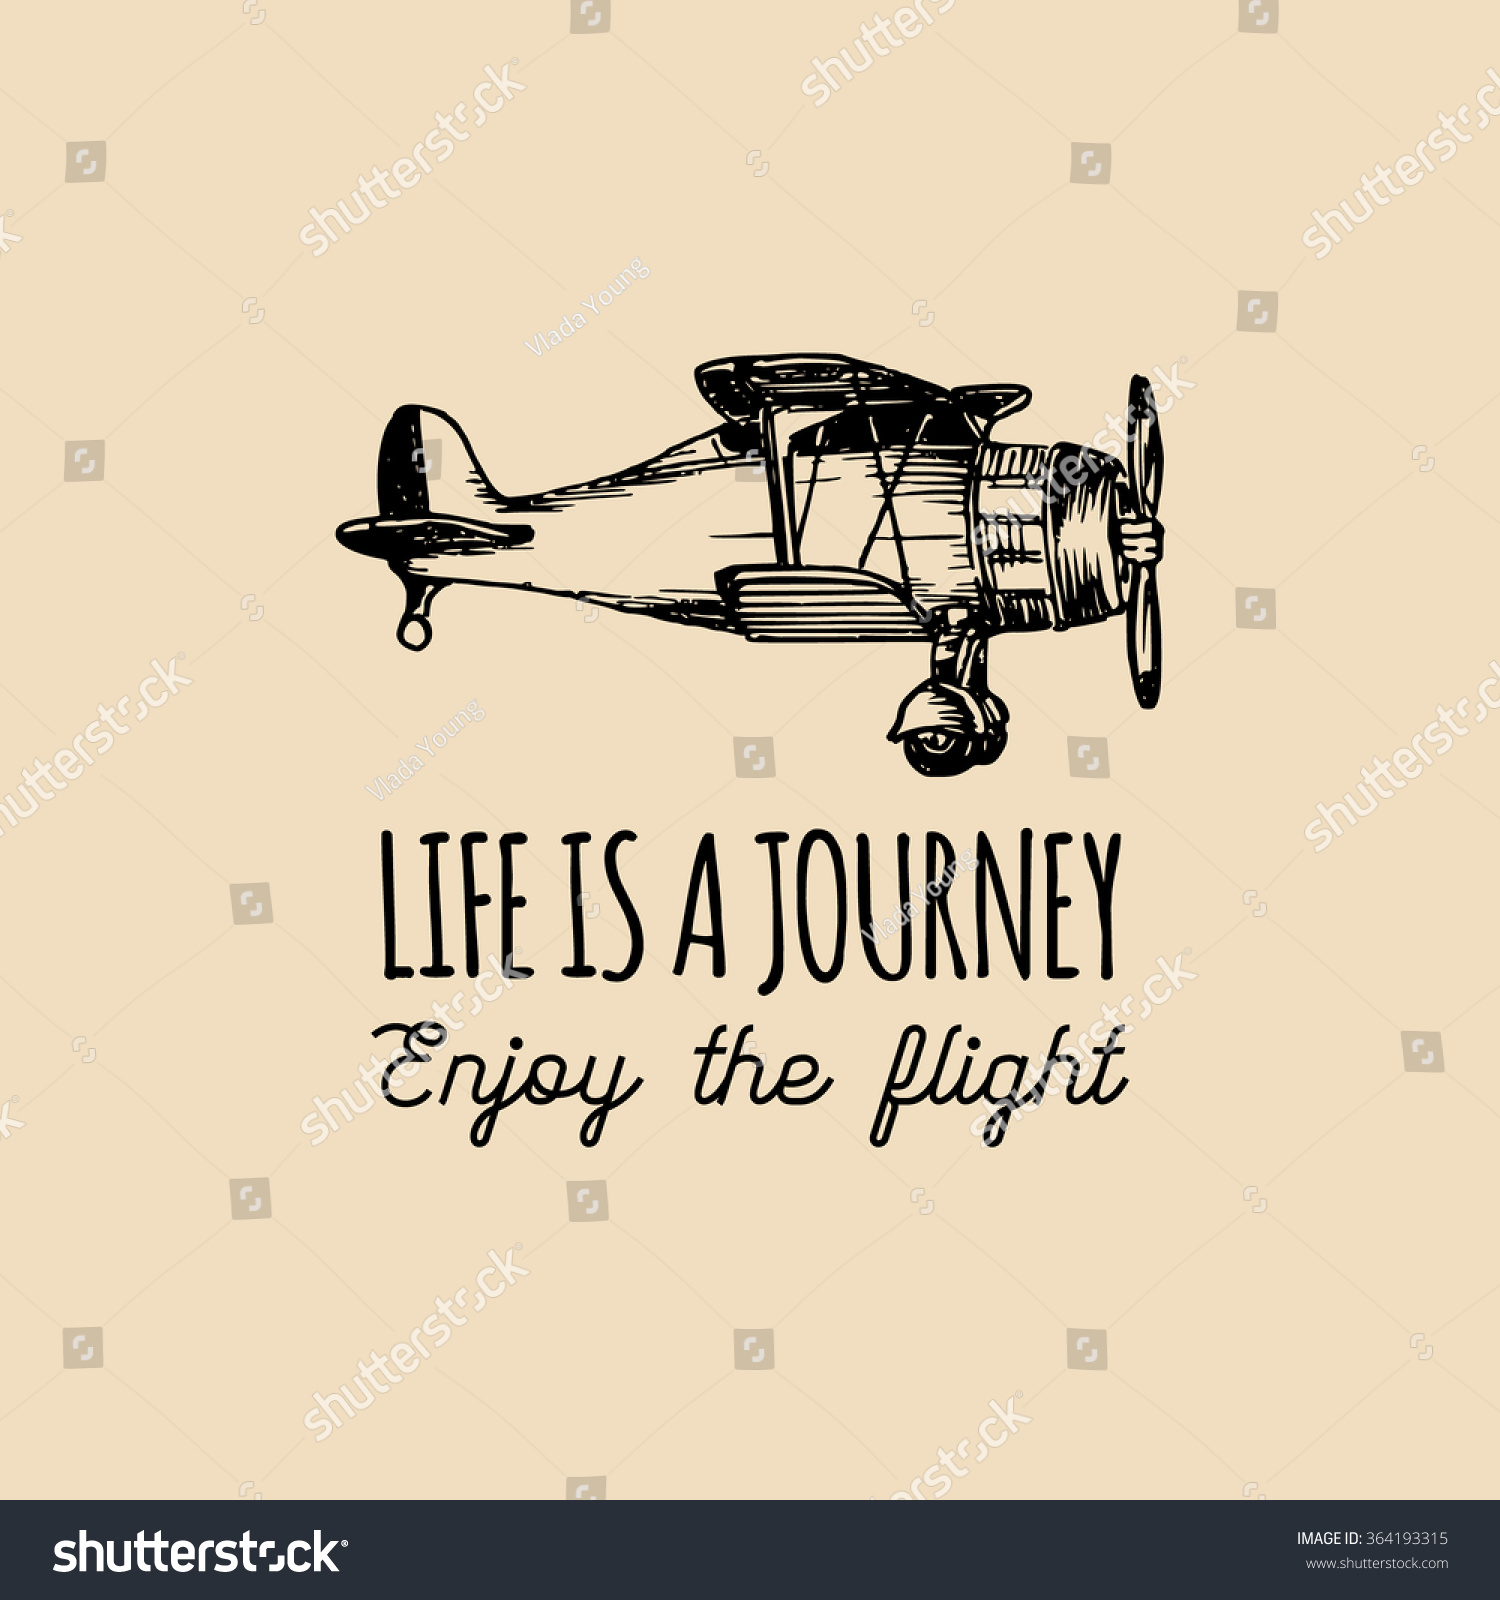 Motivational Inspirational Quotes: Life Journey Enjoy Flight Motivational Quote Vectores En